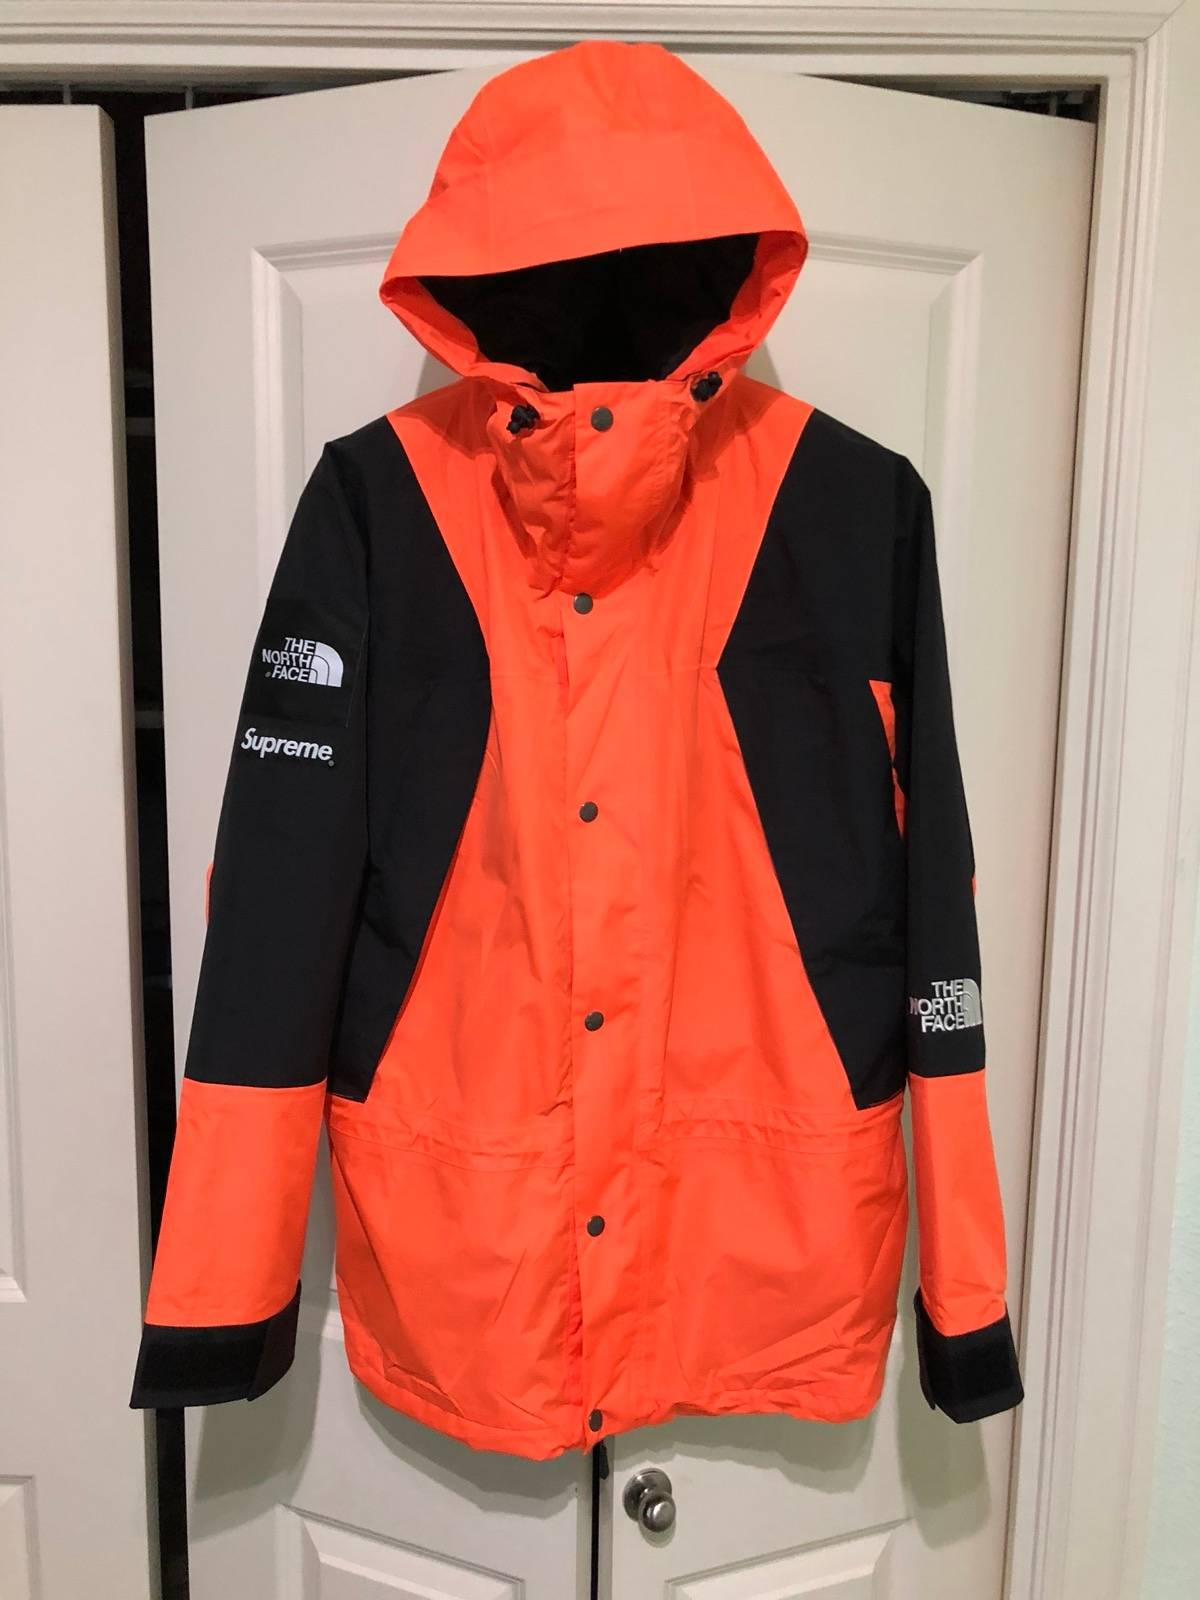 08d3dbc1a Supreme × The North Face Supreme X Tnf Mountain Light Jacket Orange Parka  Size L Size L $688